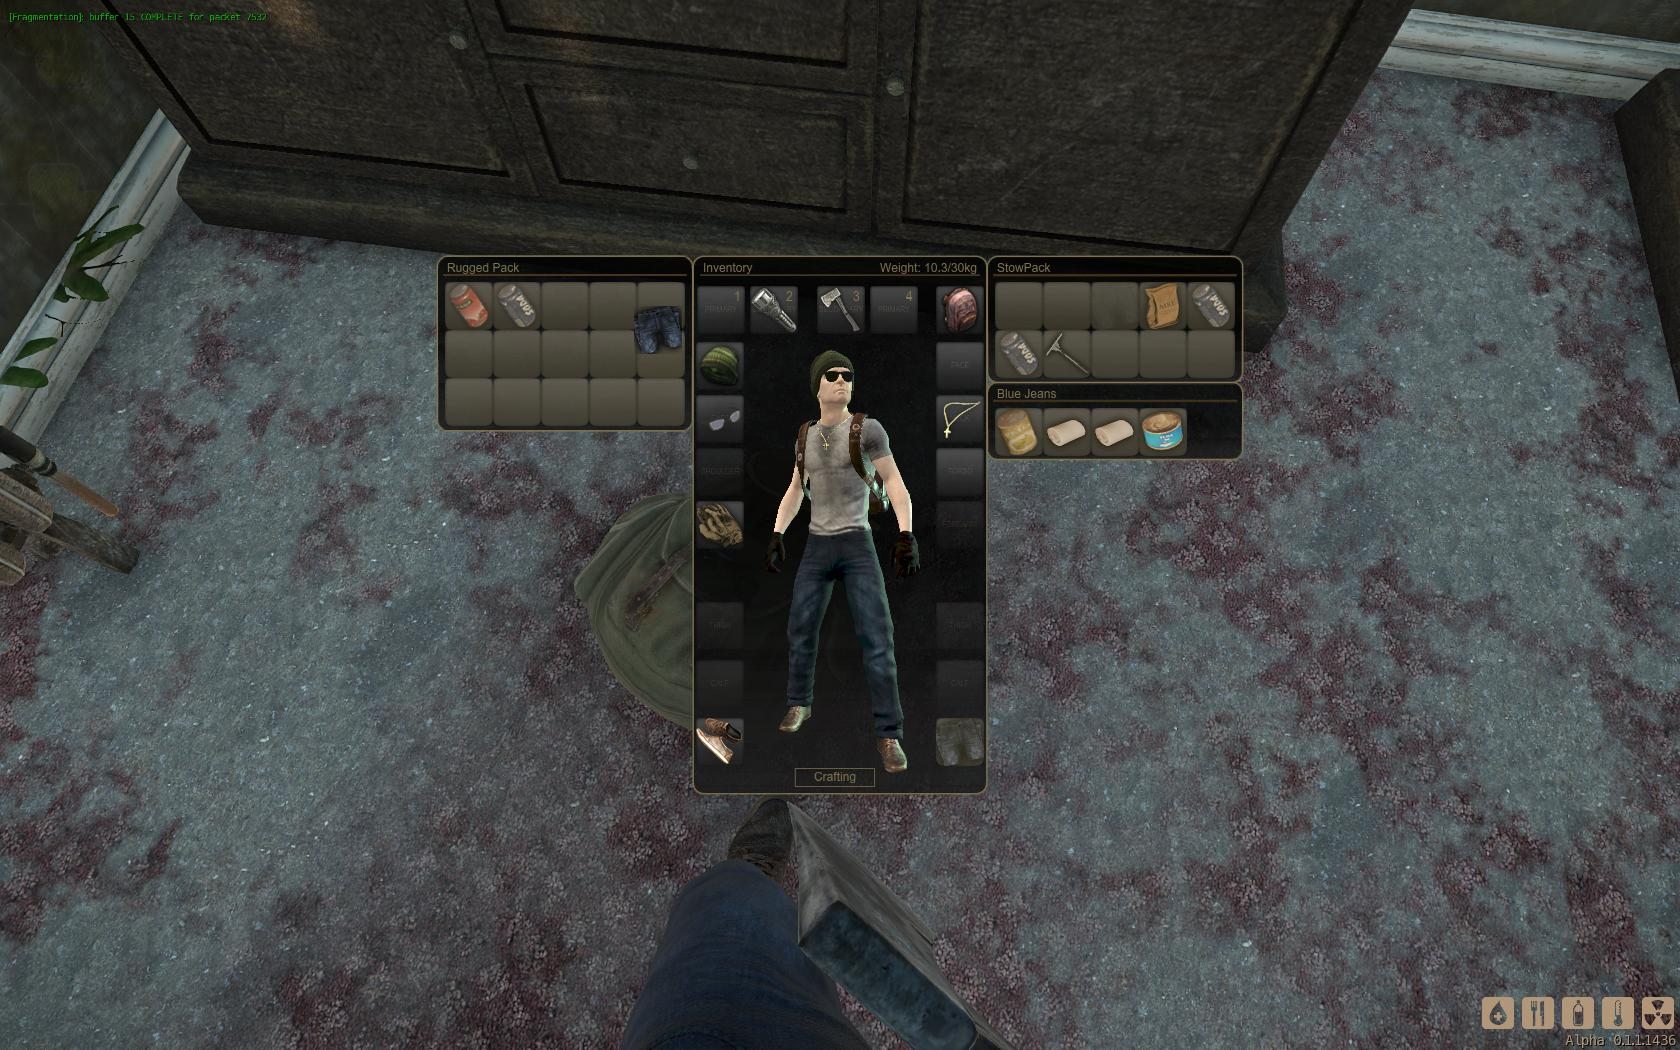 Drag-'n'-Drop is a welcome improvement over DayZ's Accidentally Drop.